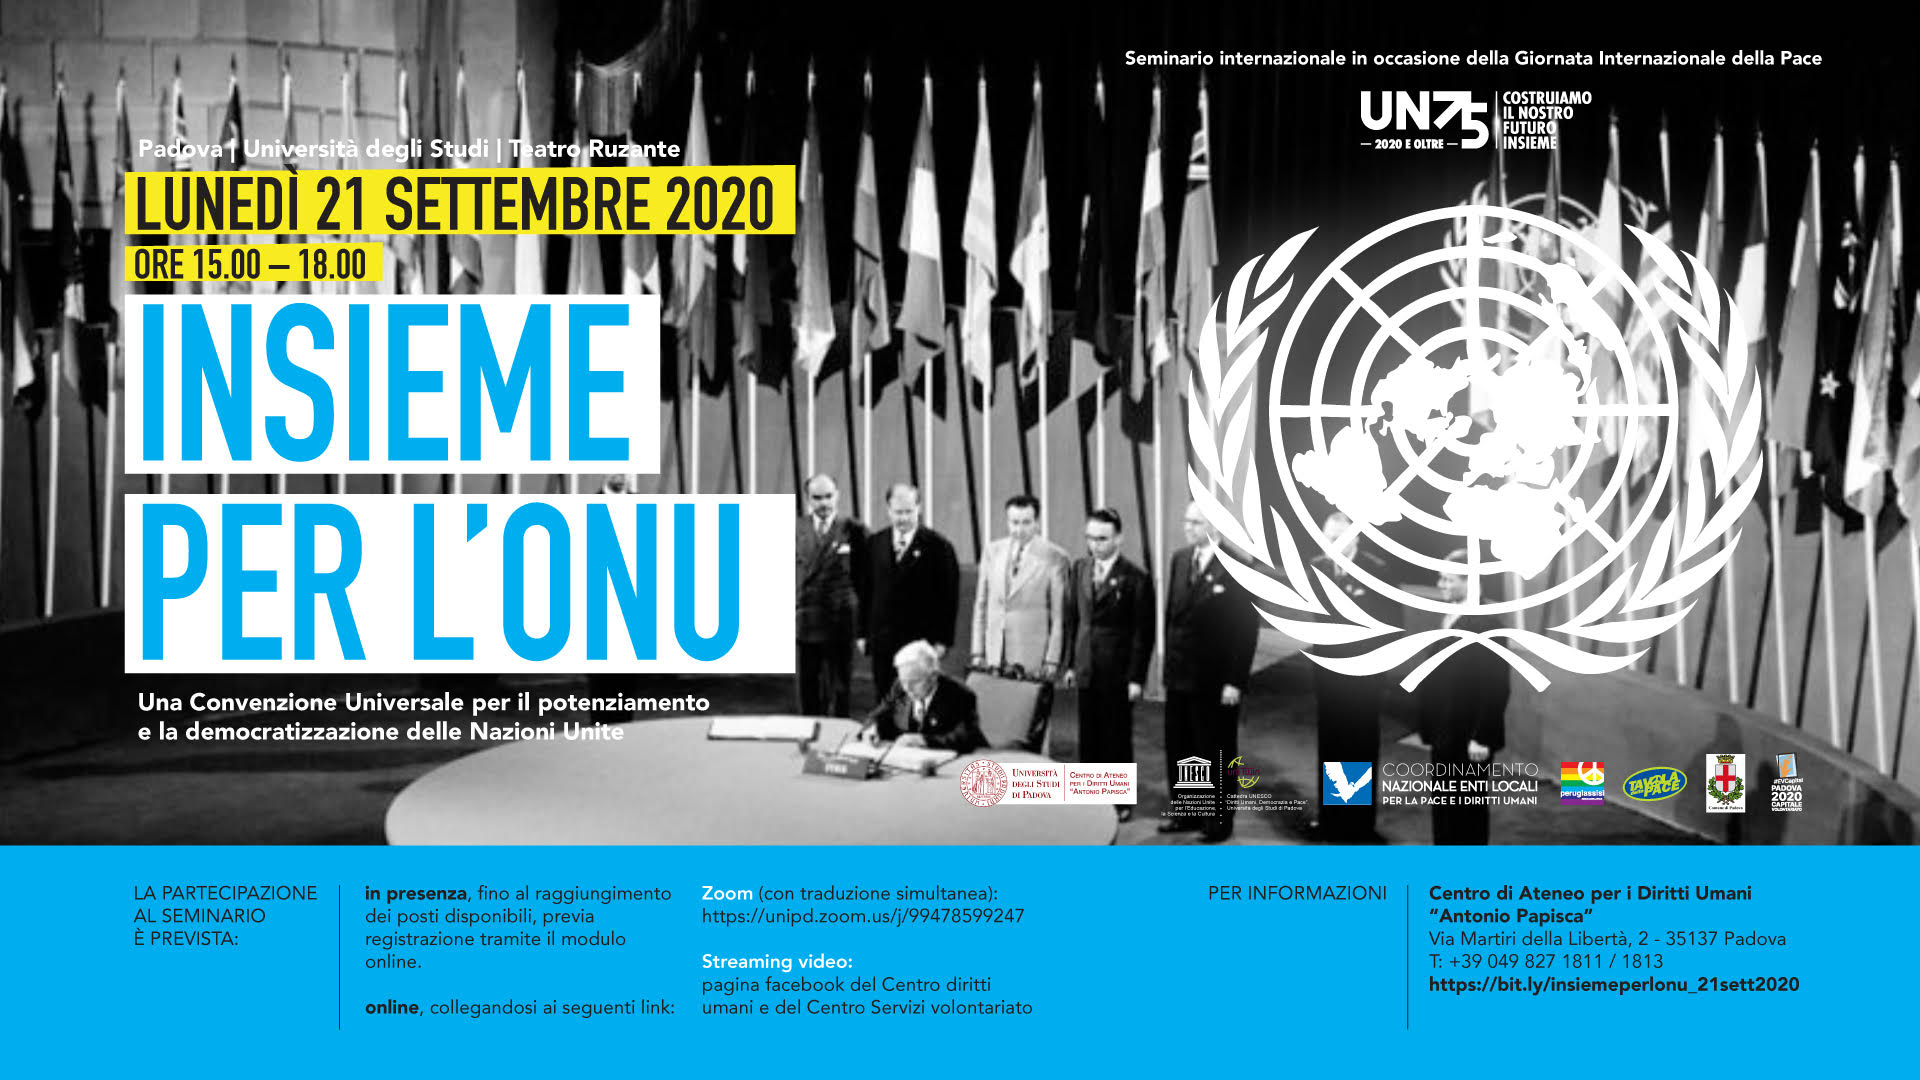 Together for the UN. A Universal Convention for the strengthening and democratization of the United Nations, Monday 21 settembre 2020, Uniersity of Padova